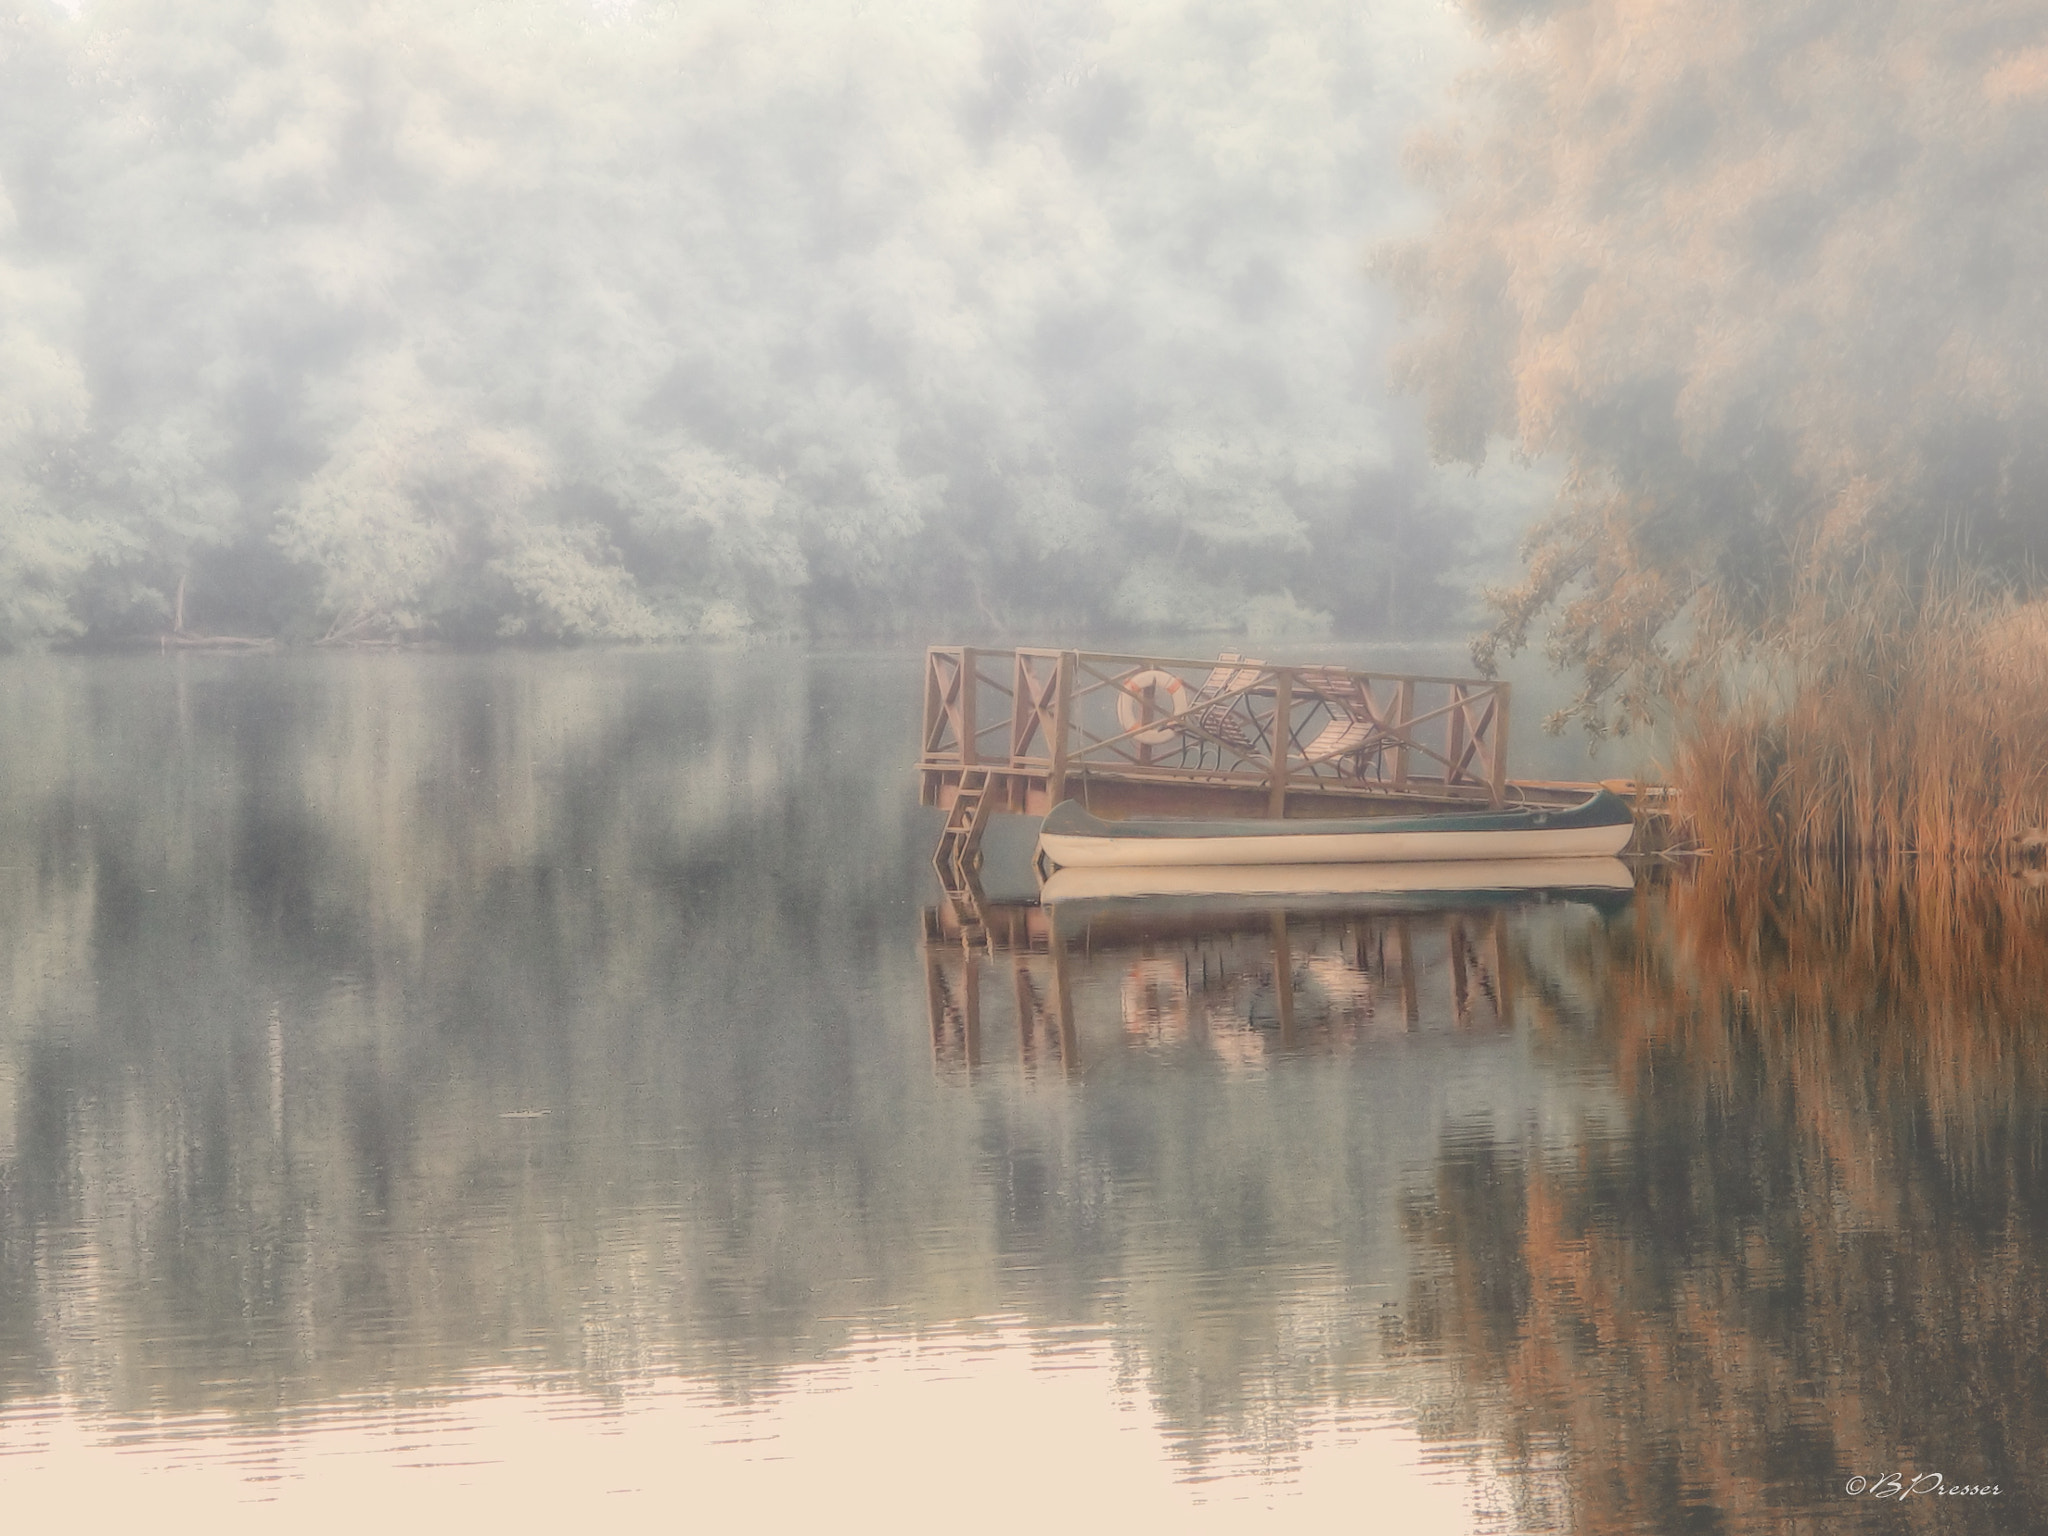 Photograph Nebelsee by Birgit Presser on 500px